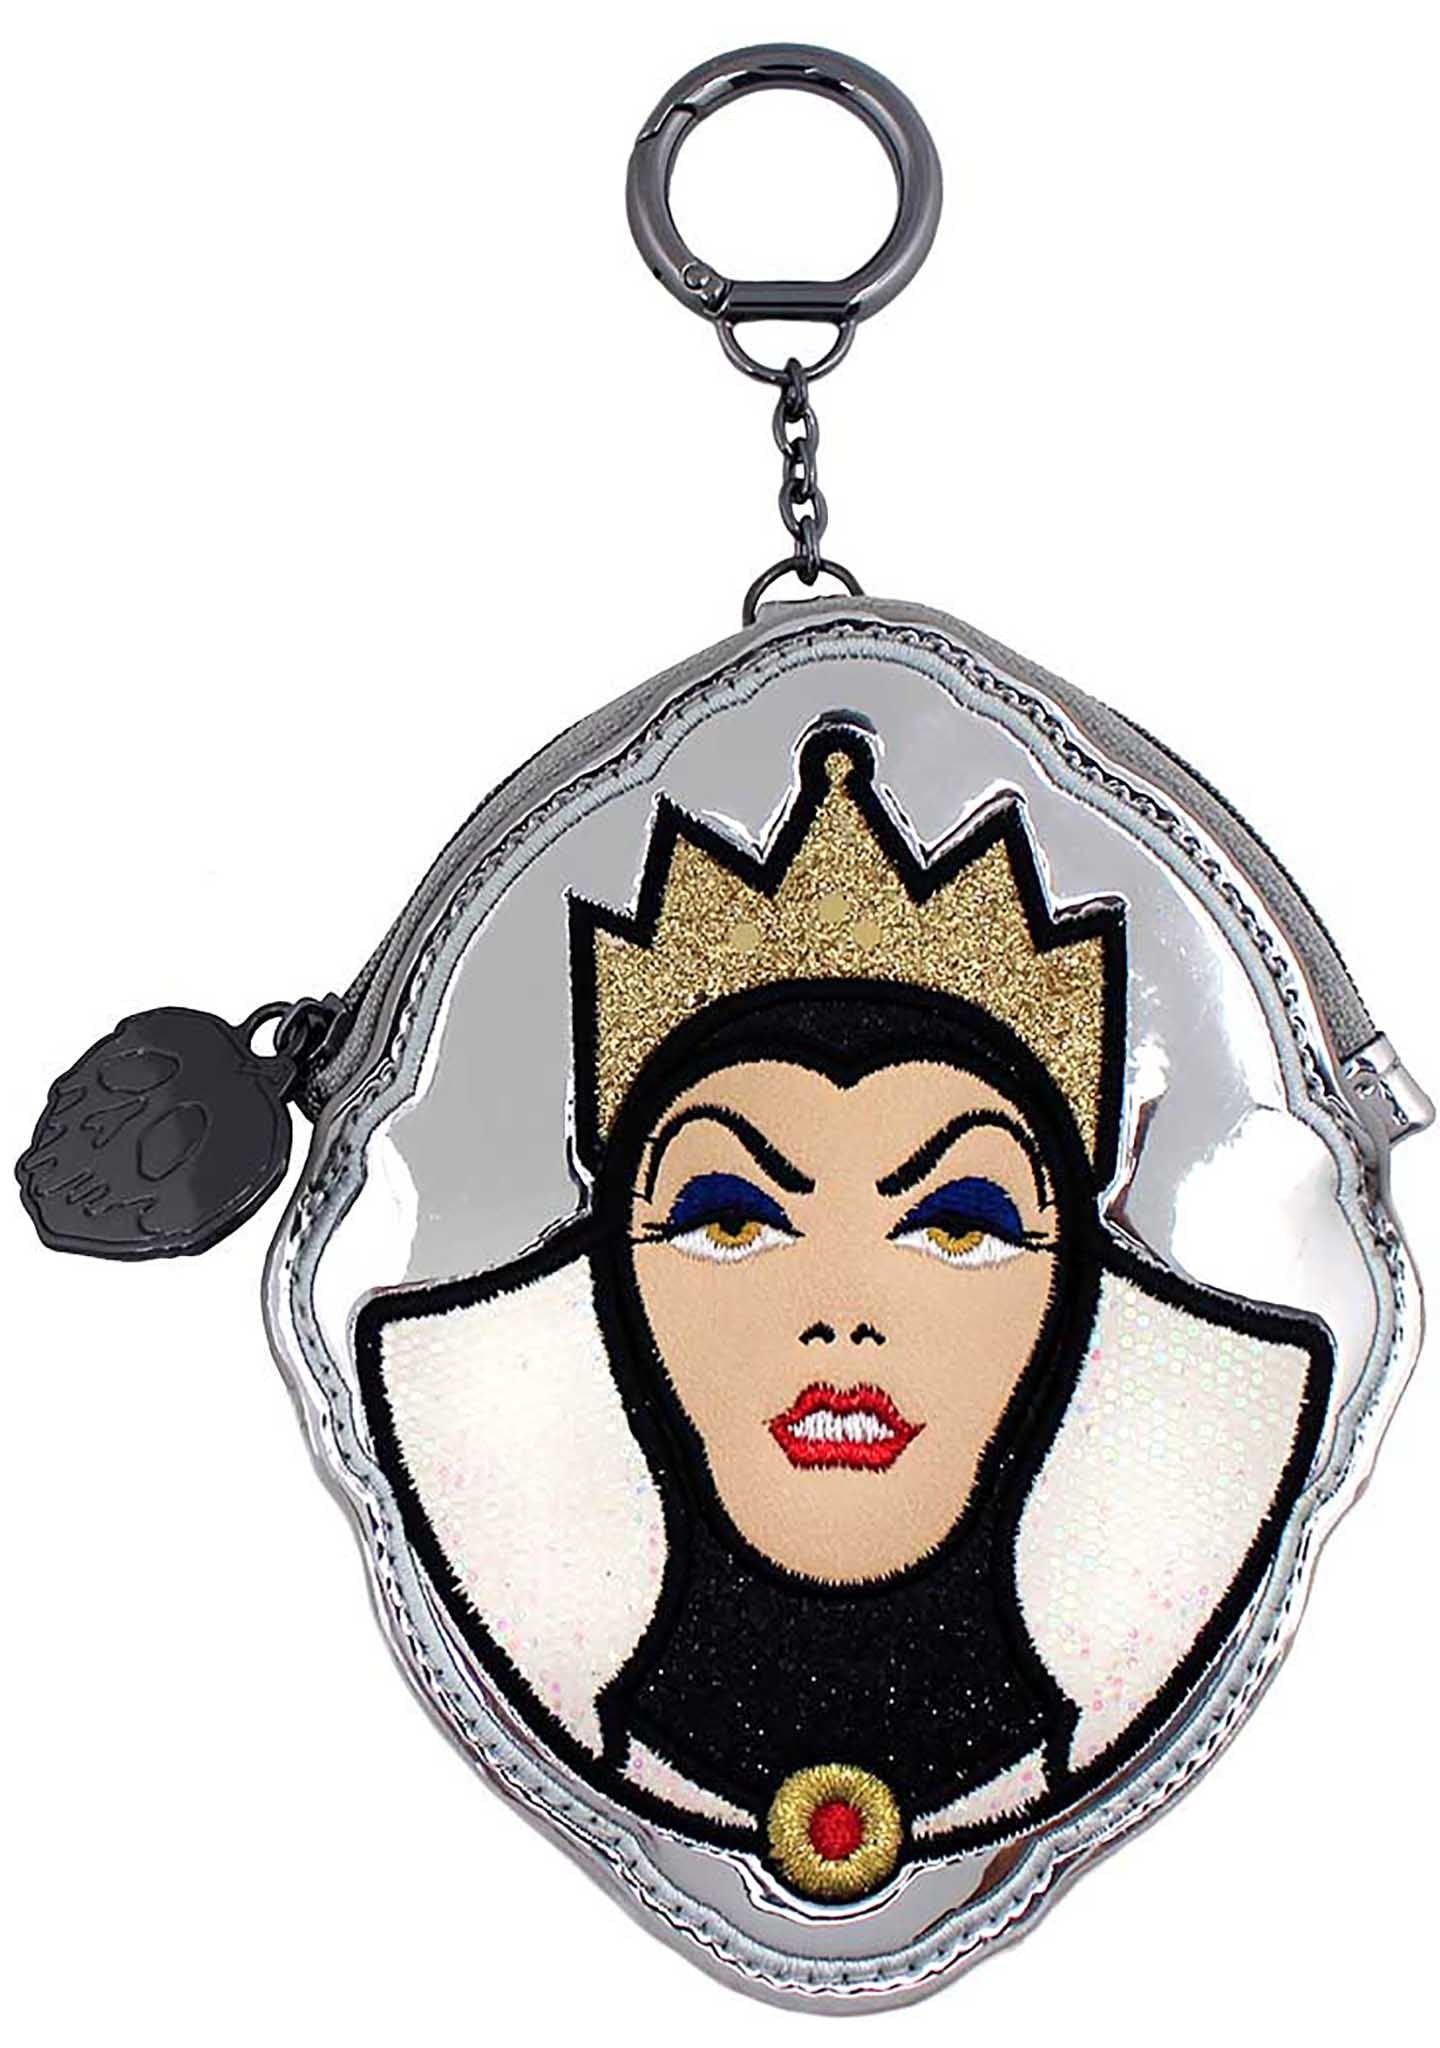 Danielle Nicole X Disney Evil Queen Coin Bag